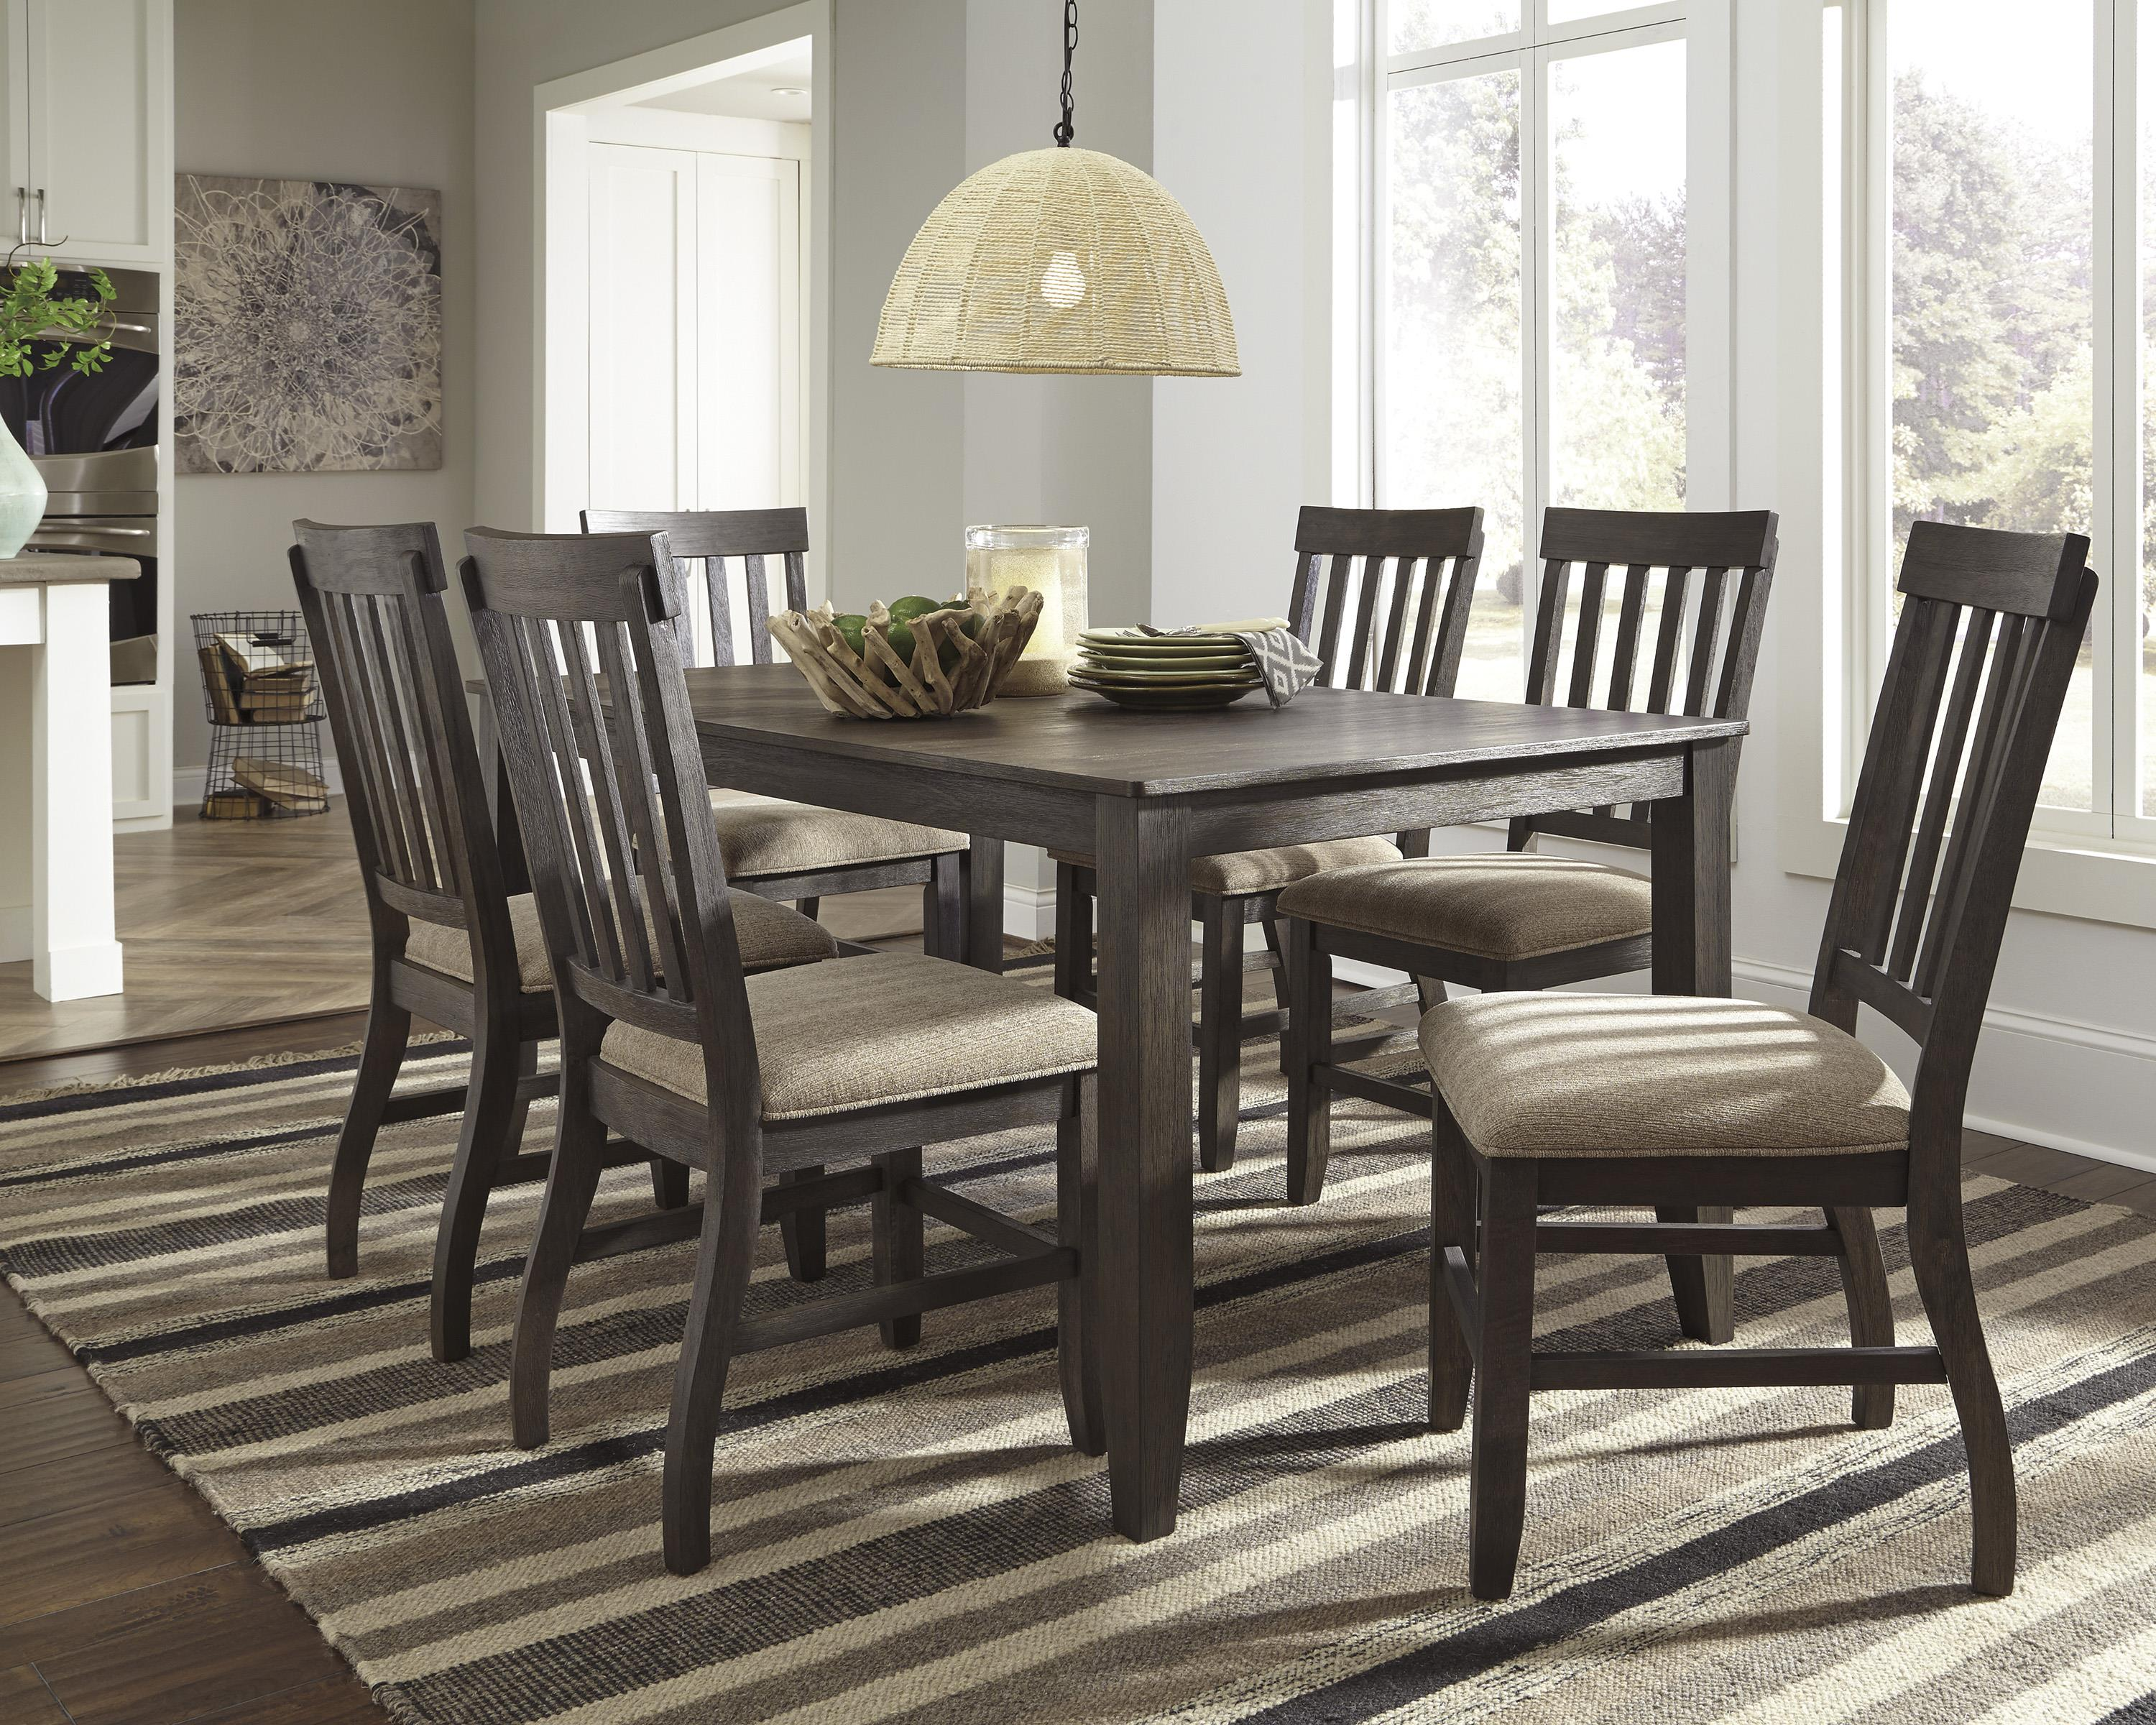 Signature Design By Ashley Dresbar Square Dining Room Counter Table With  Wire Brushed Brown Gray Finish   Wayside Furniture   Pub Table